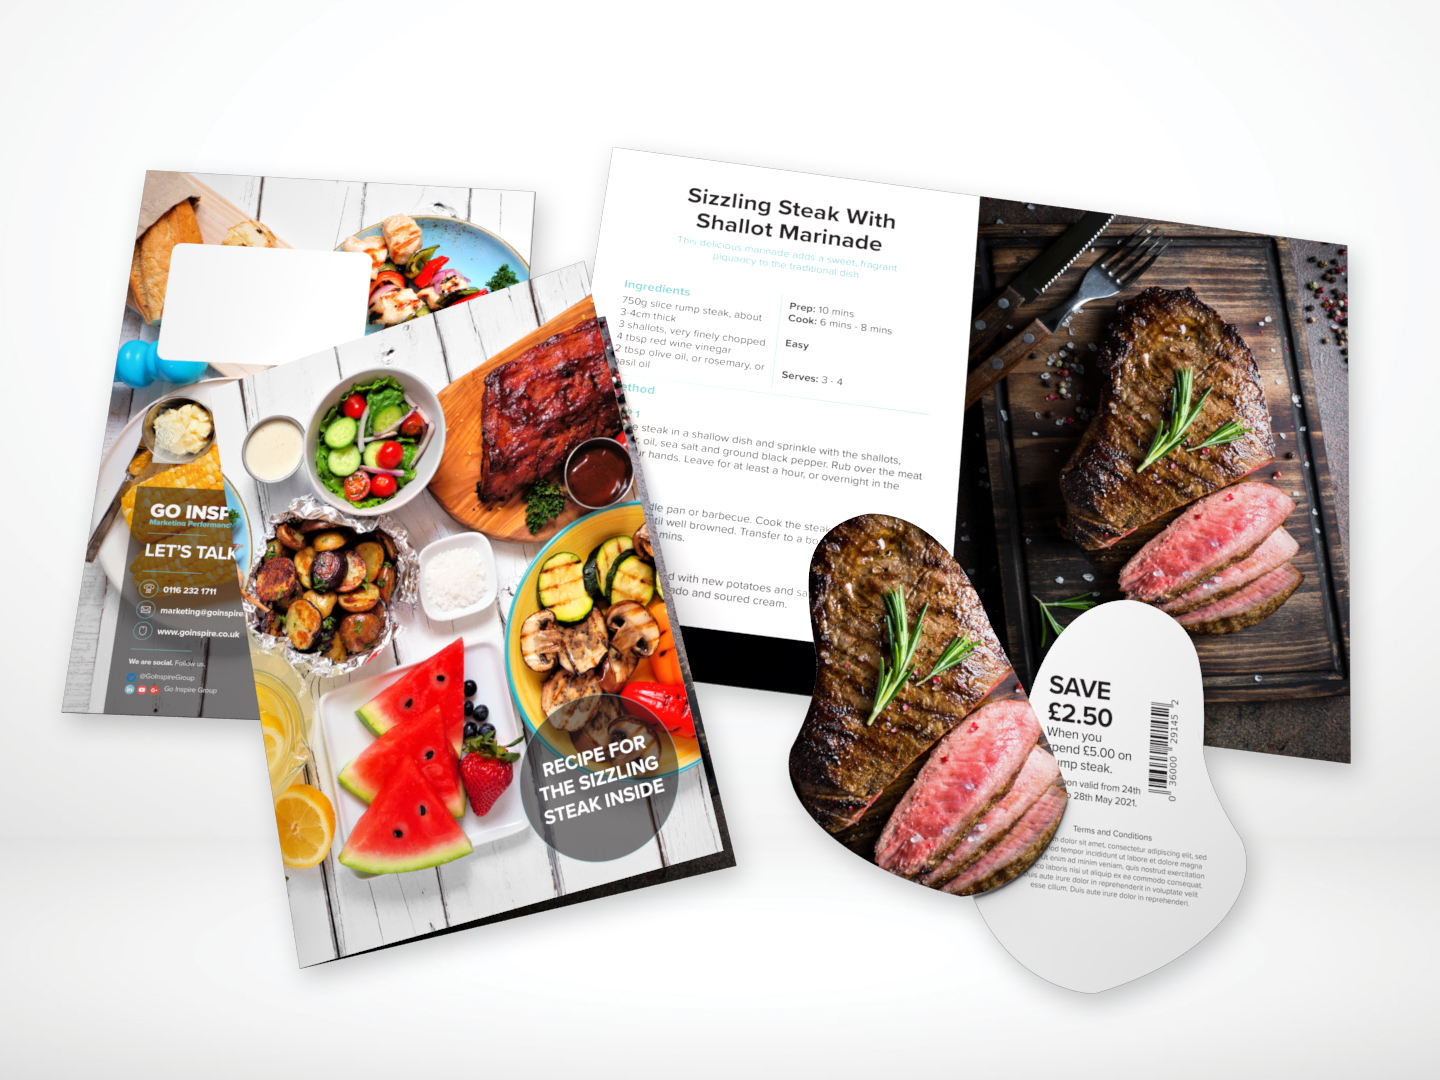 4pp A5 one piece mailer with die-cut steak shaped coupon - CF303